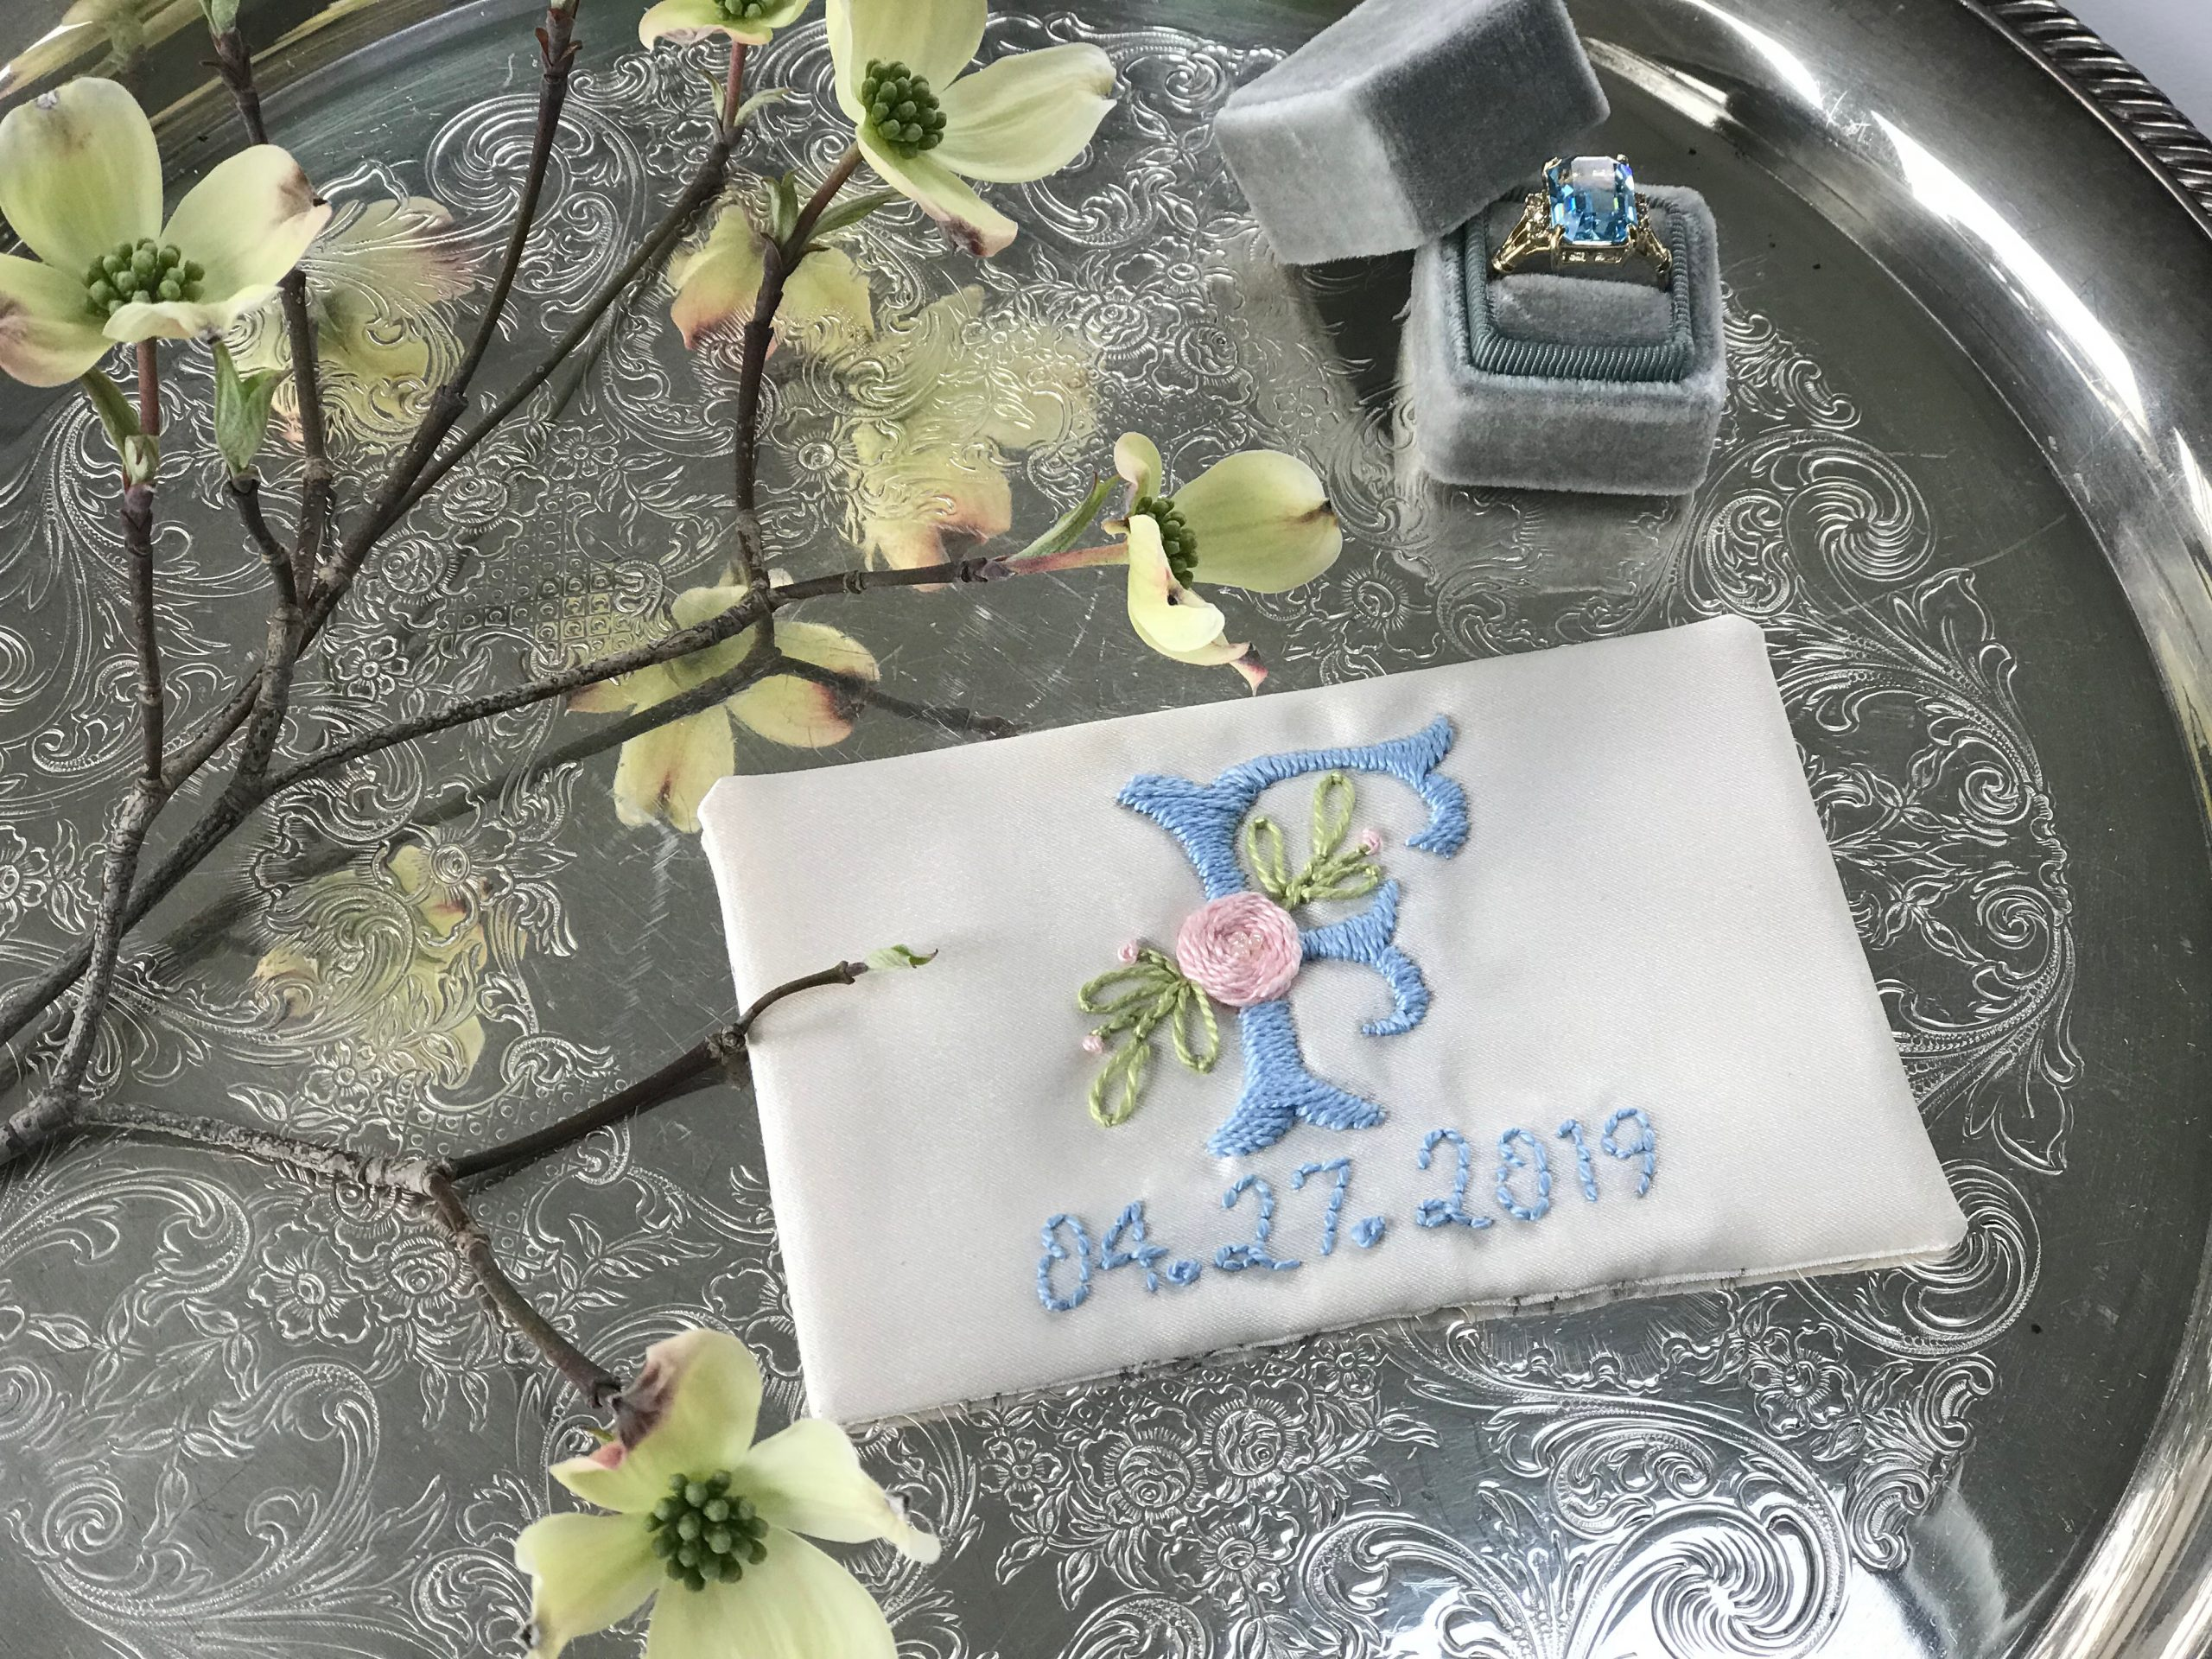 An 'F' embroidered on the ring bearer's pillow for a Spring wedding on April 4, 2019. Work by Megan Hamilton Weddings. Featured on Dream Weddings.